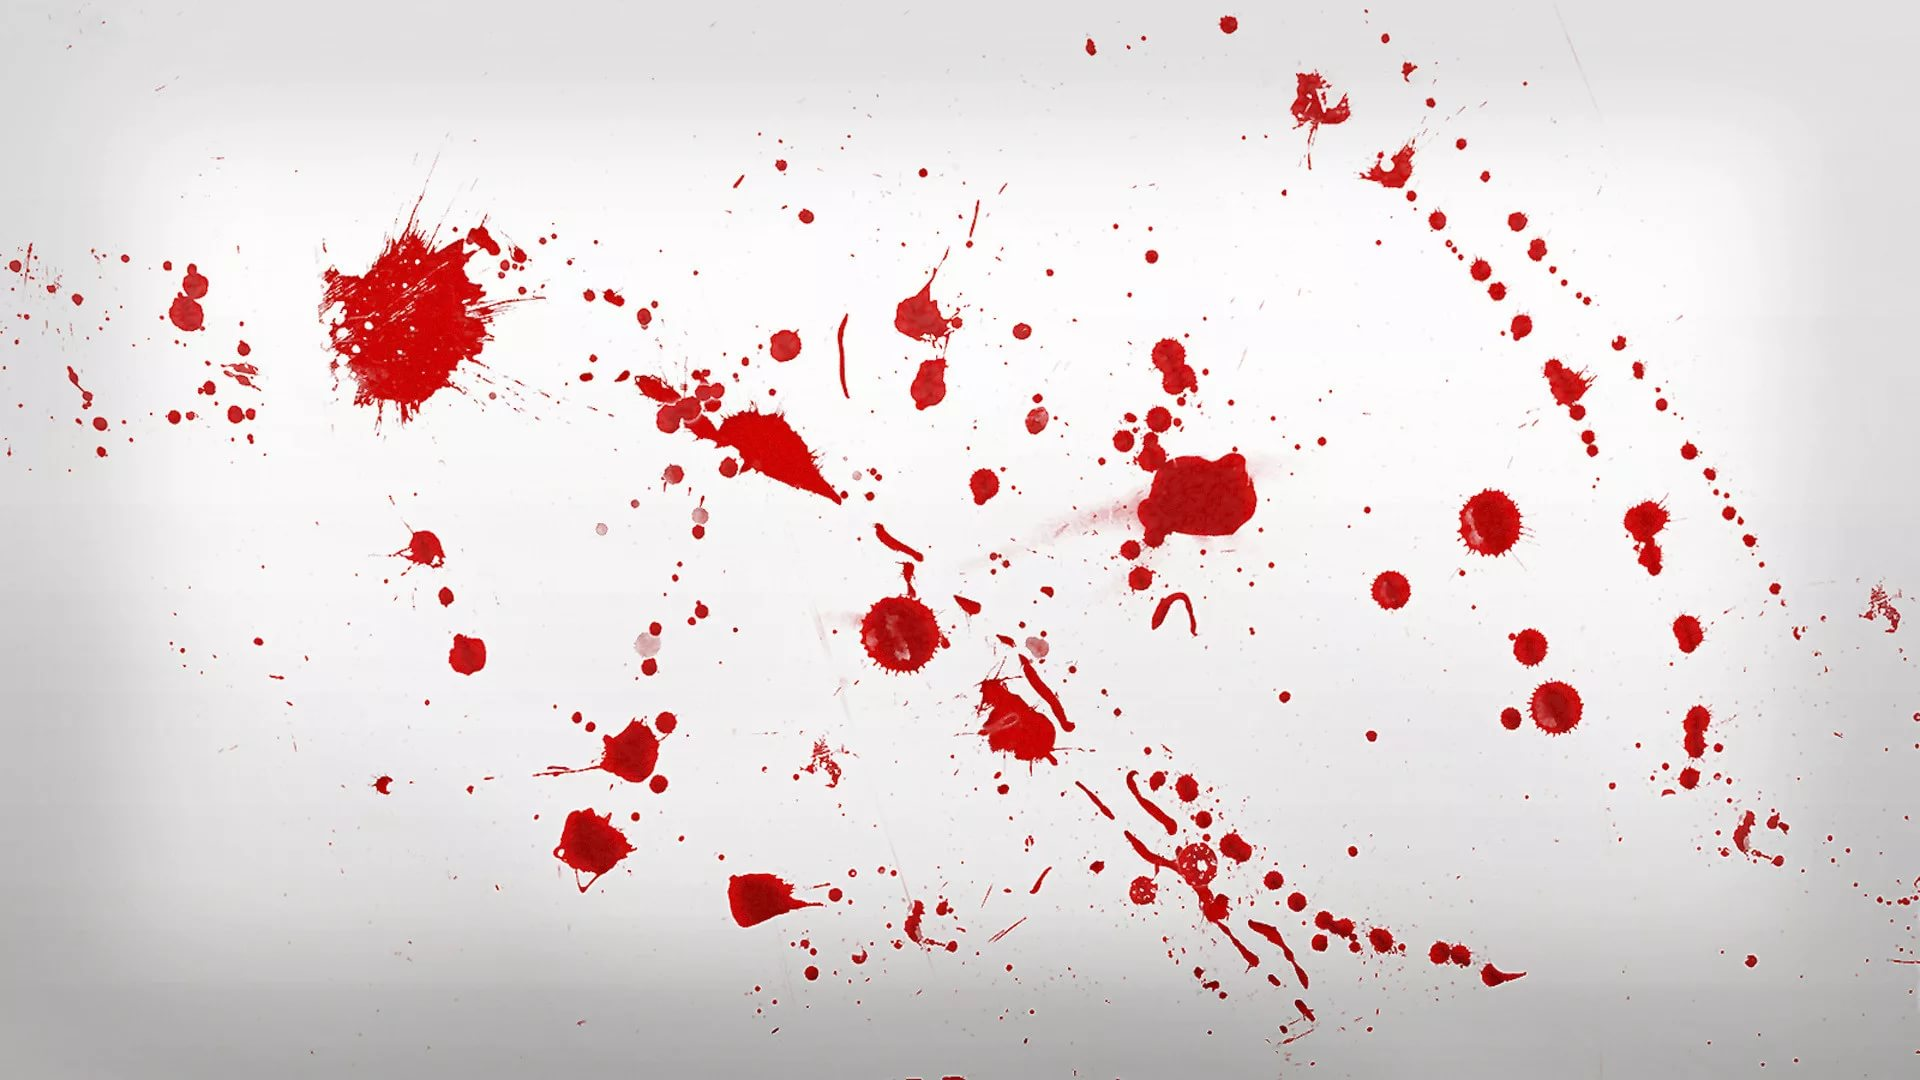 Blood hd desktop wallpaper